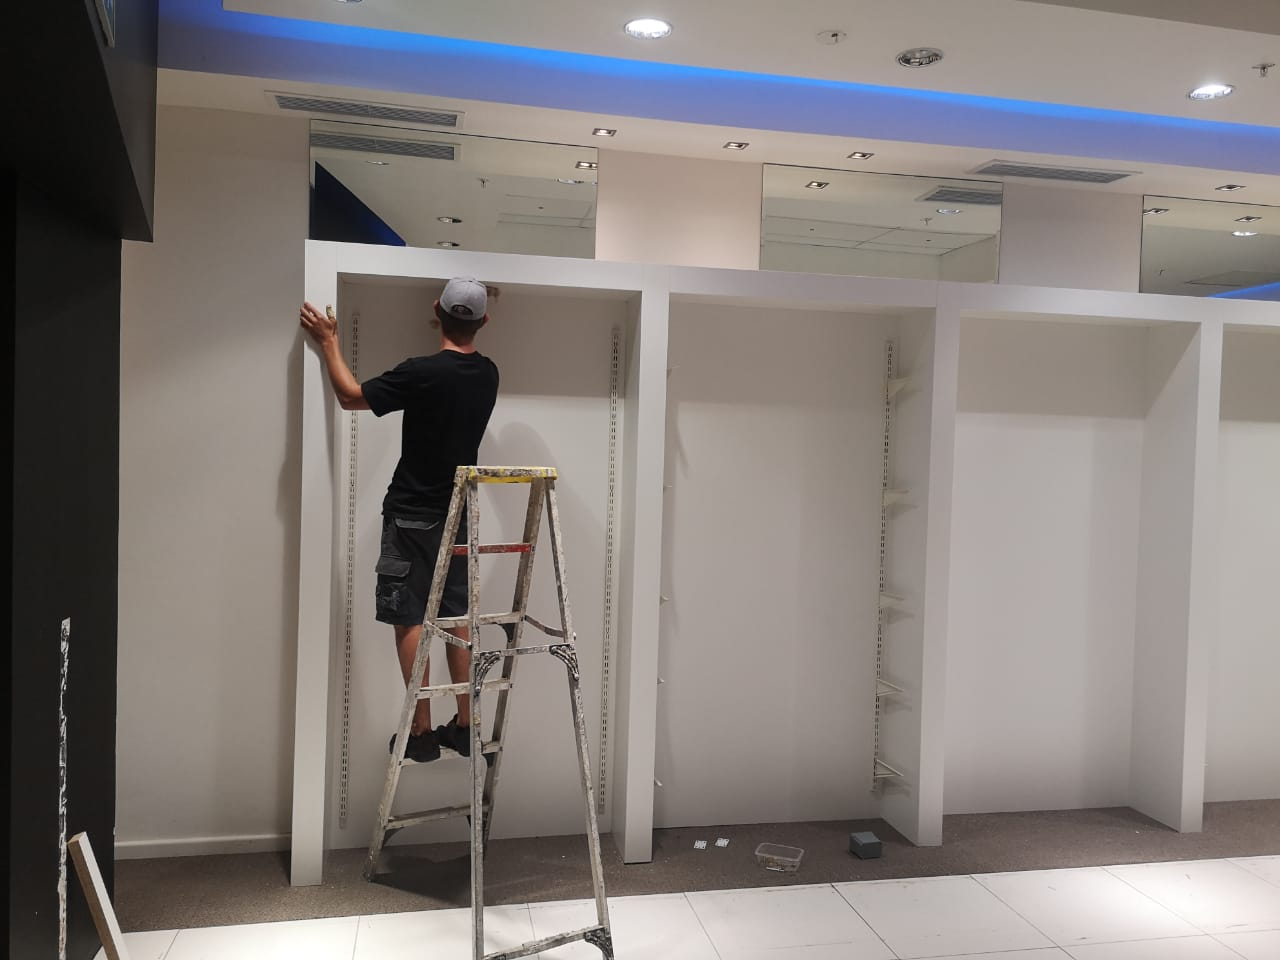 If you are unsure how and where to begin, feel free to contact us today, all our quotes are free. We have trained staff standing by to help you start your renovation project off on the right foot.